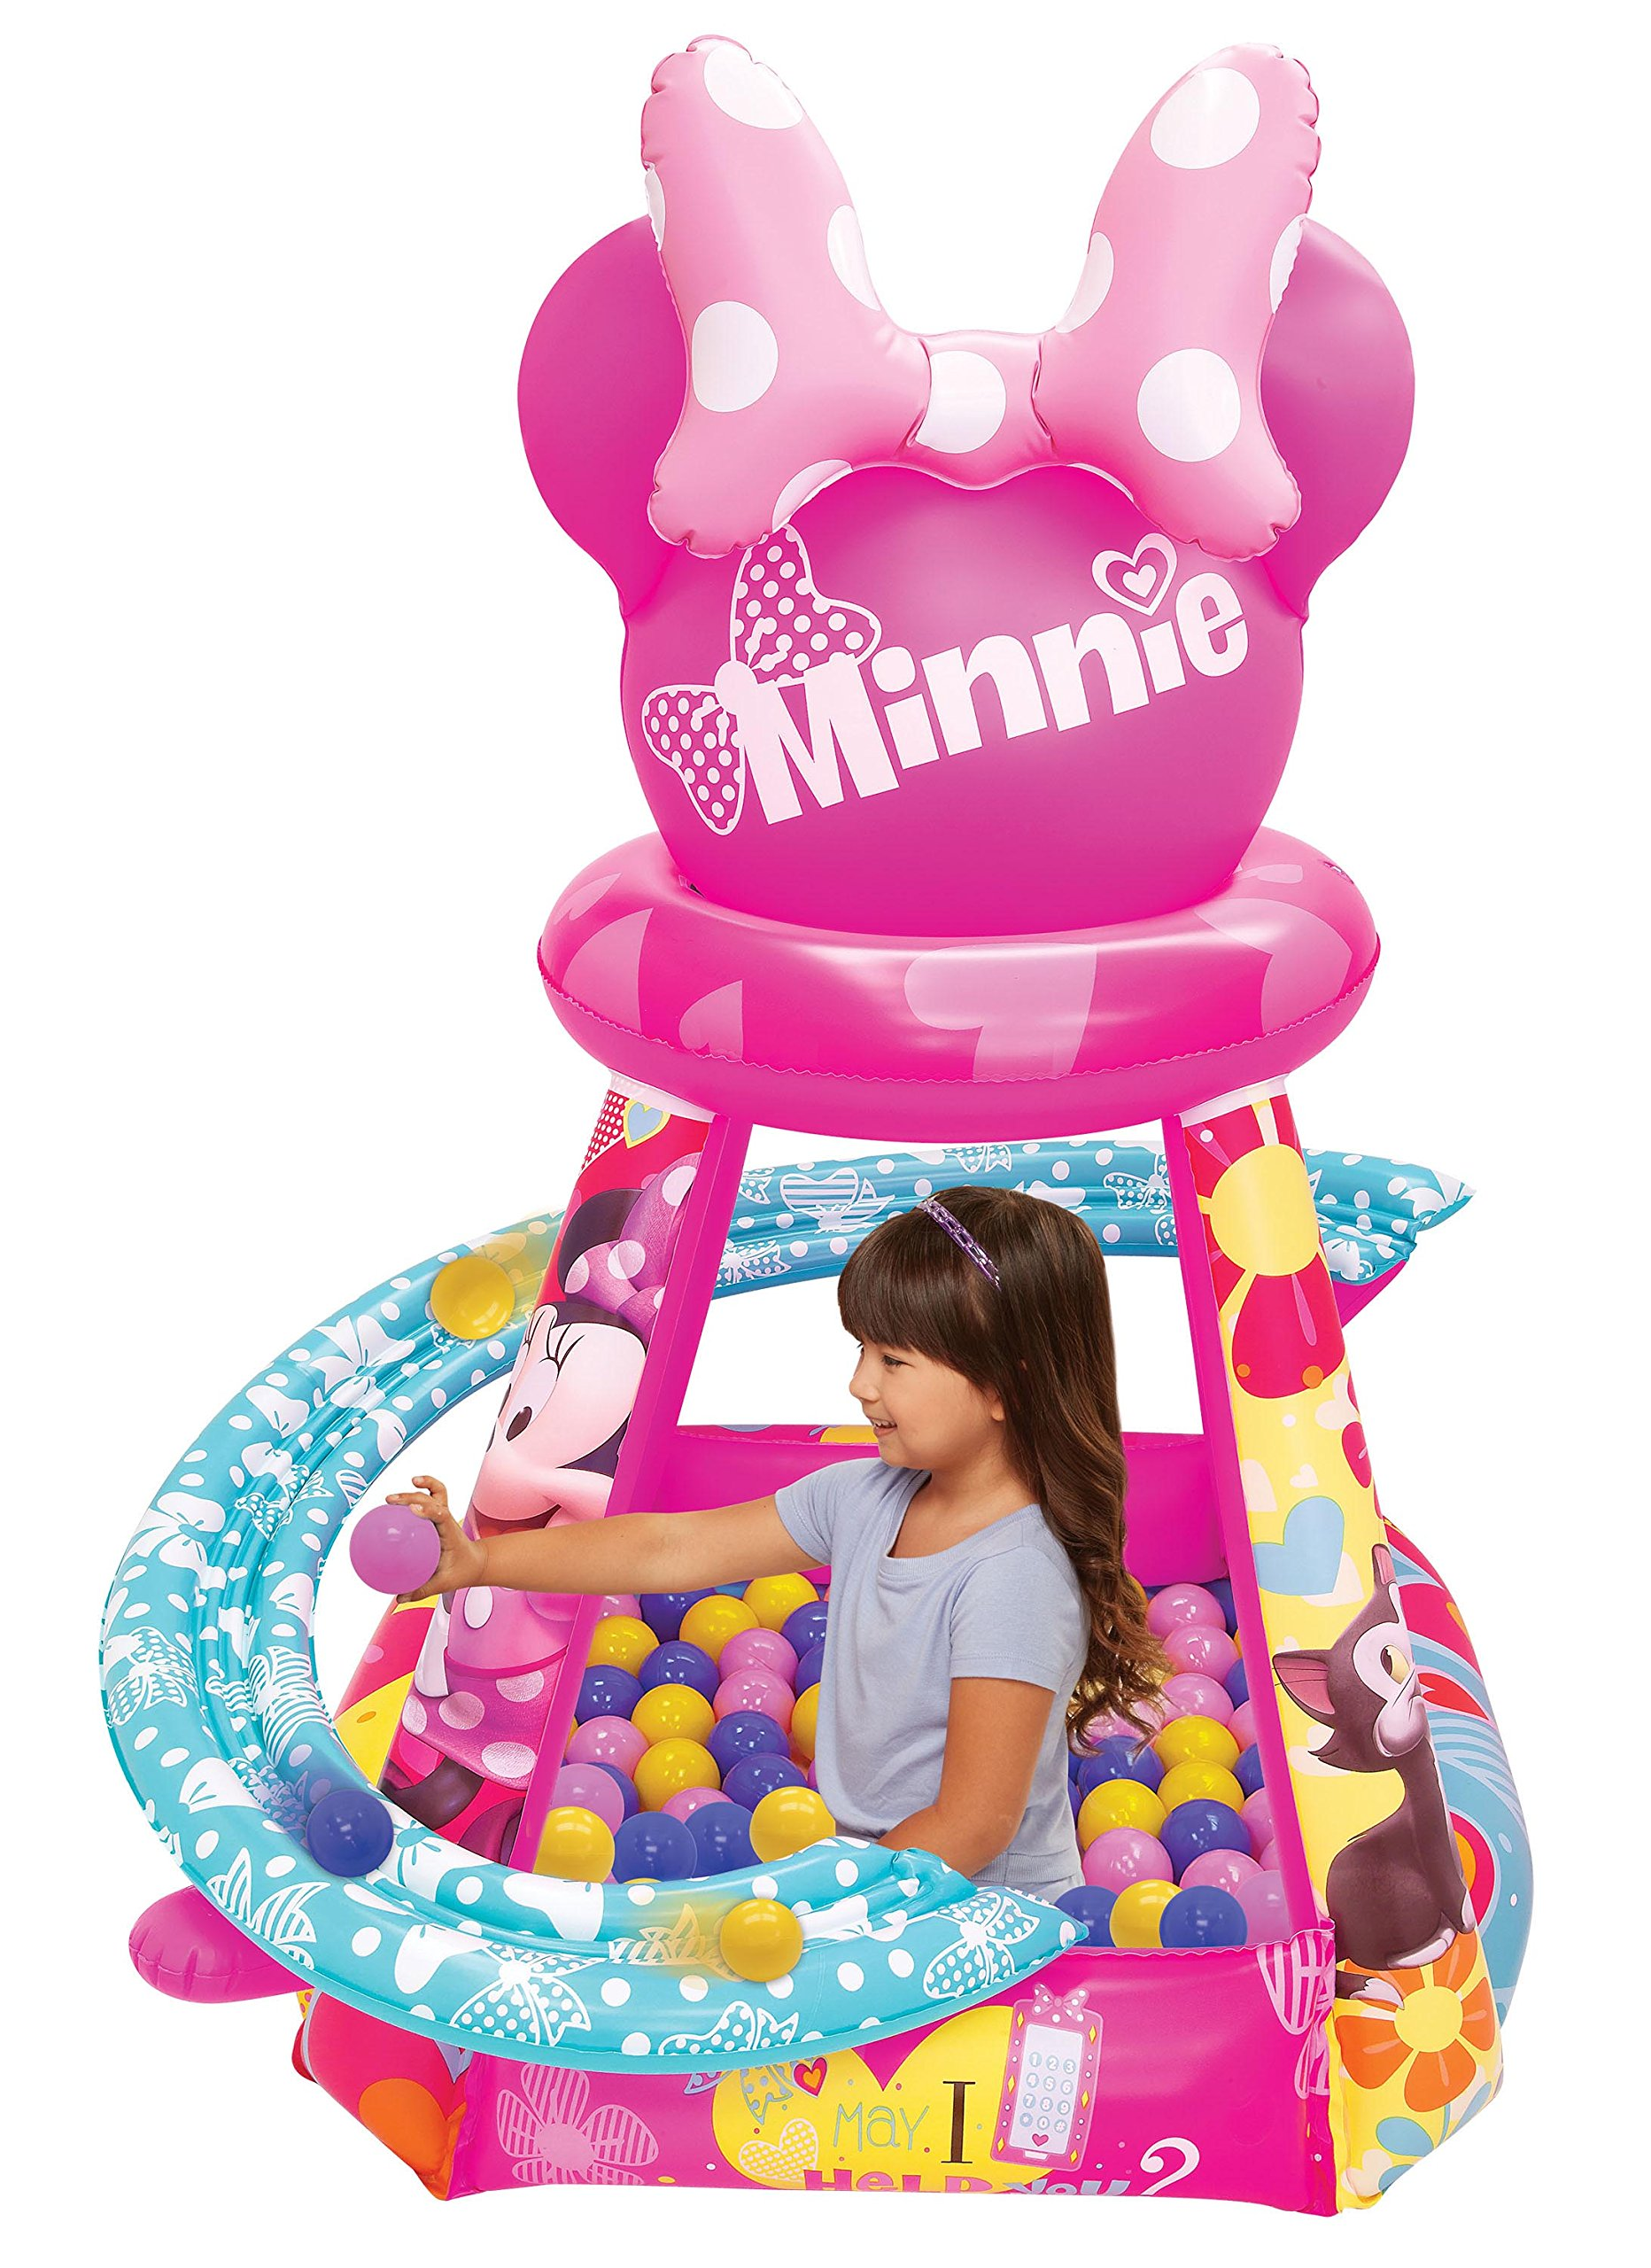 Minnie Mouse Big Heart & Bows Ball Pit, 1 Inflatable & 50 Sof-Flex Balls, Pink, 43''W x 43''D x 38''H by Minnie Mouse